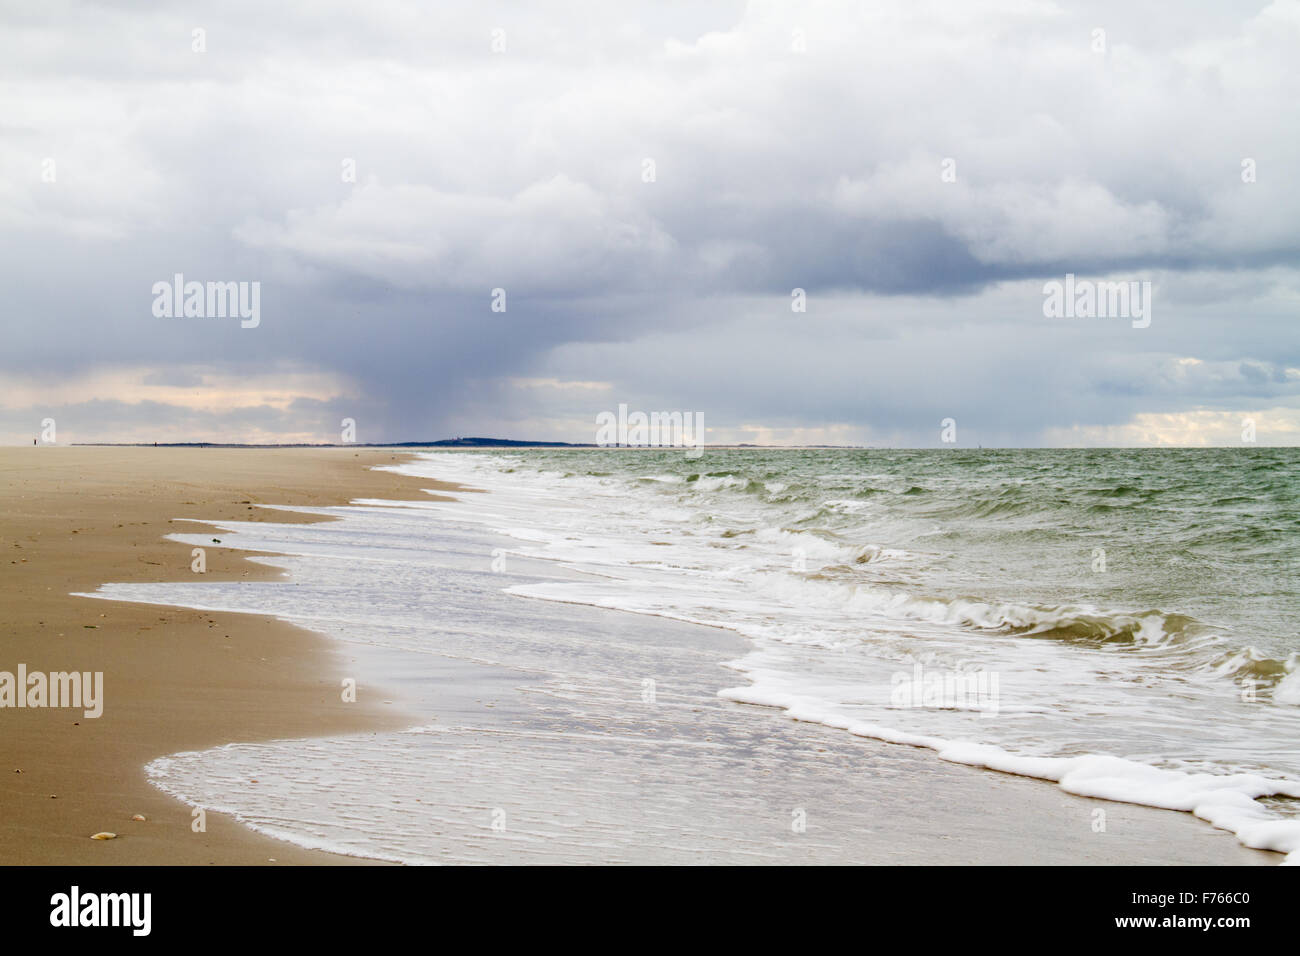 Surfs on the beach, in the distance a rain cloud - Stock Image